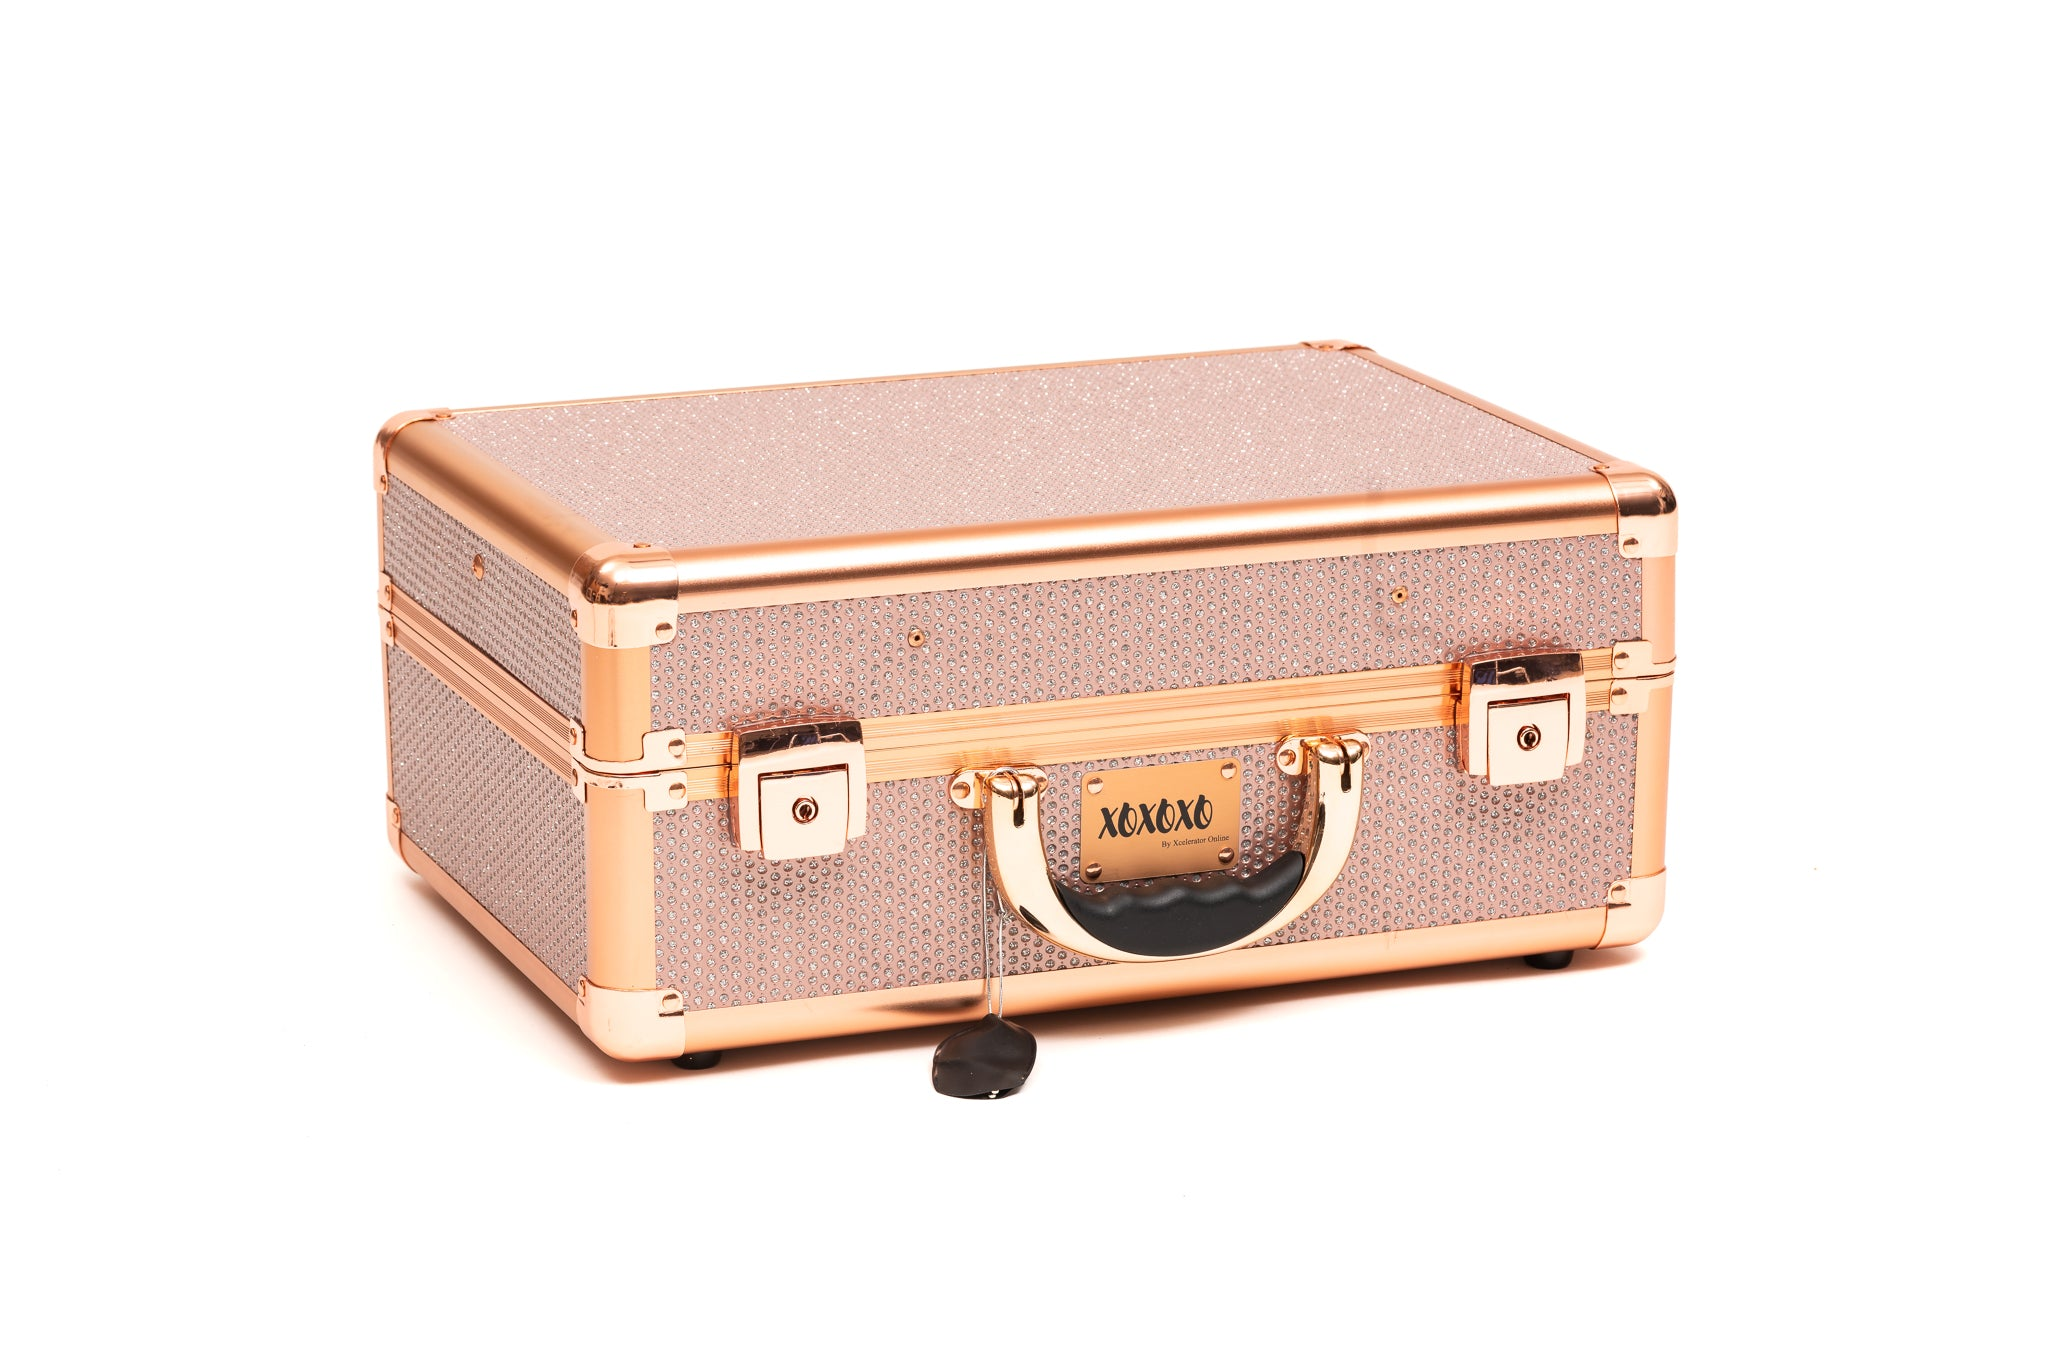 Makeup Case / Station-XOXOXO ROSE GOLD & PINK WITH GLAMOROUS GLITTER